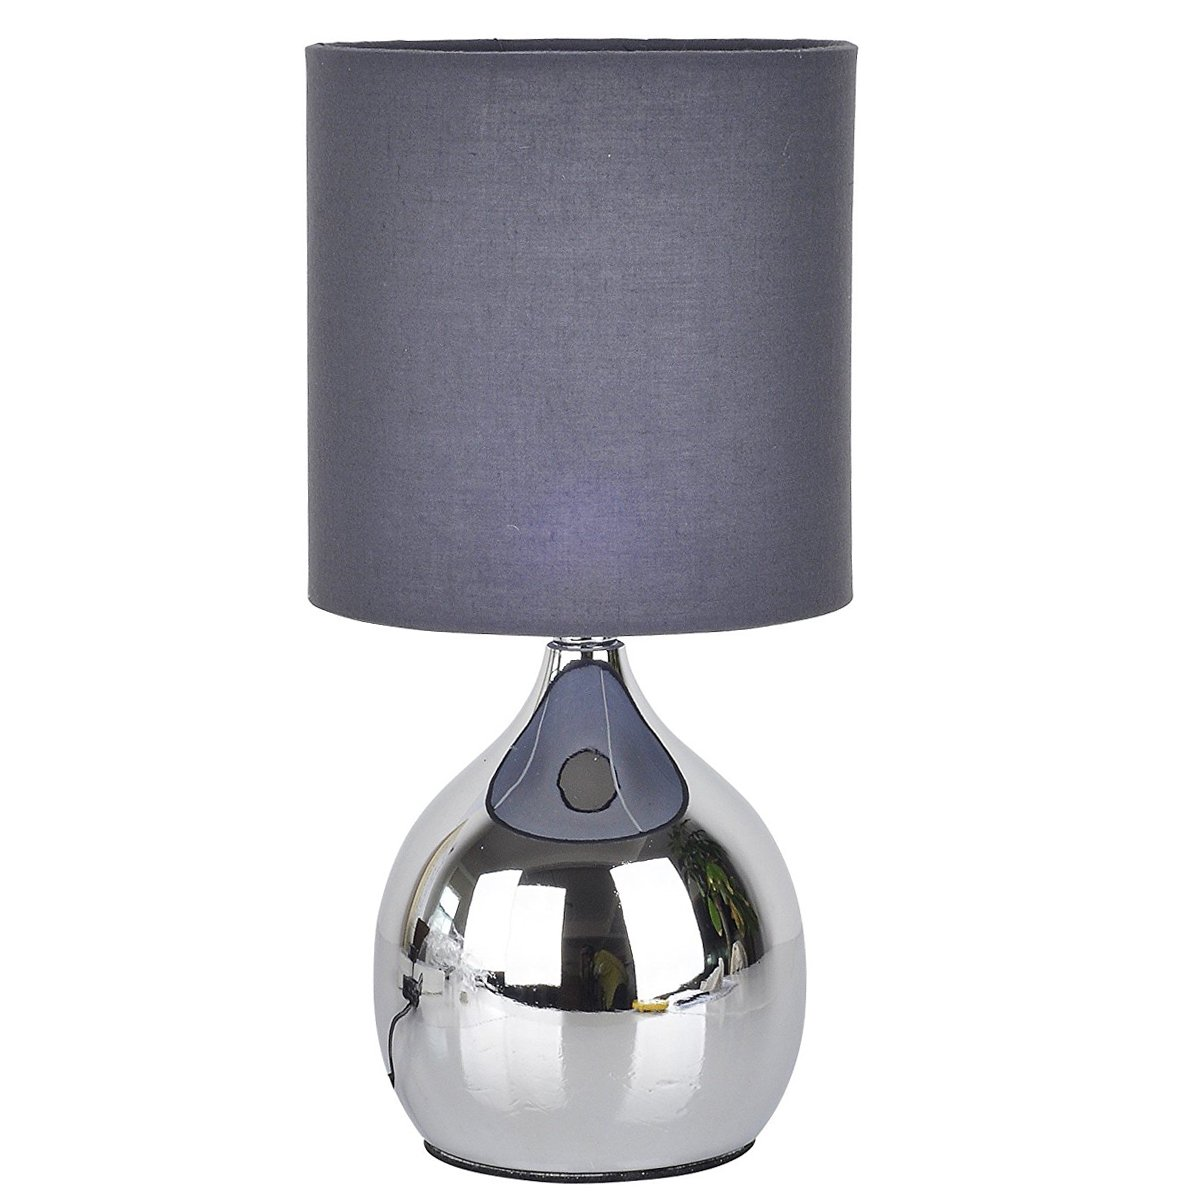 Grey Mini Touch Table Lamp 4 Stage Chrome Desk Bedside Light Wide 6 inch Tall 12 inch Small by tiffanyhouse